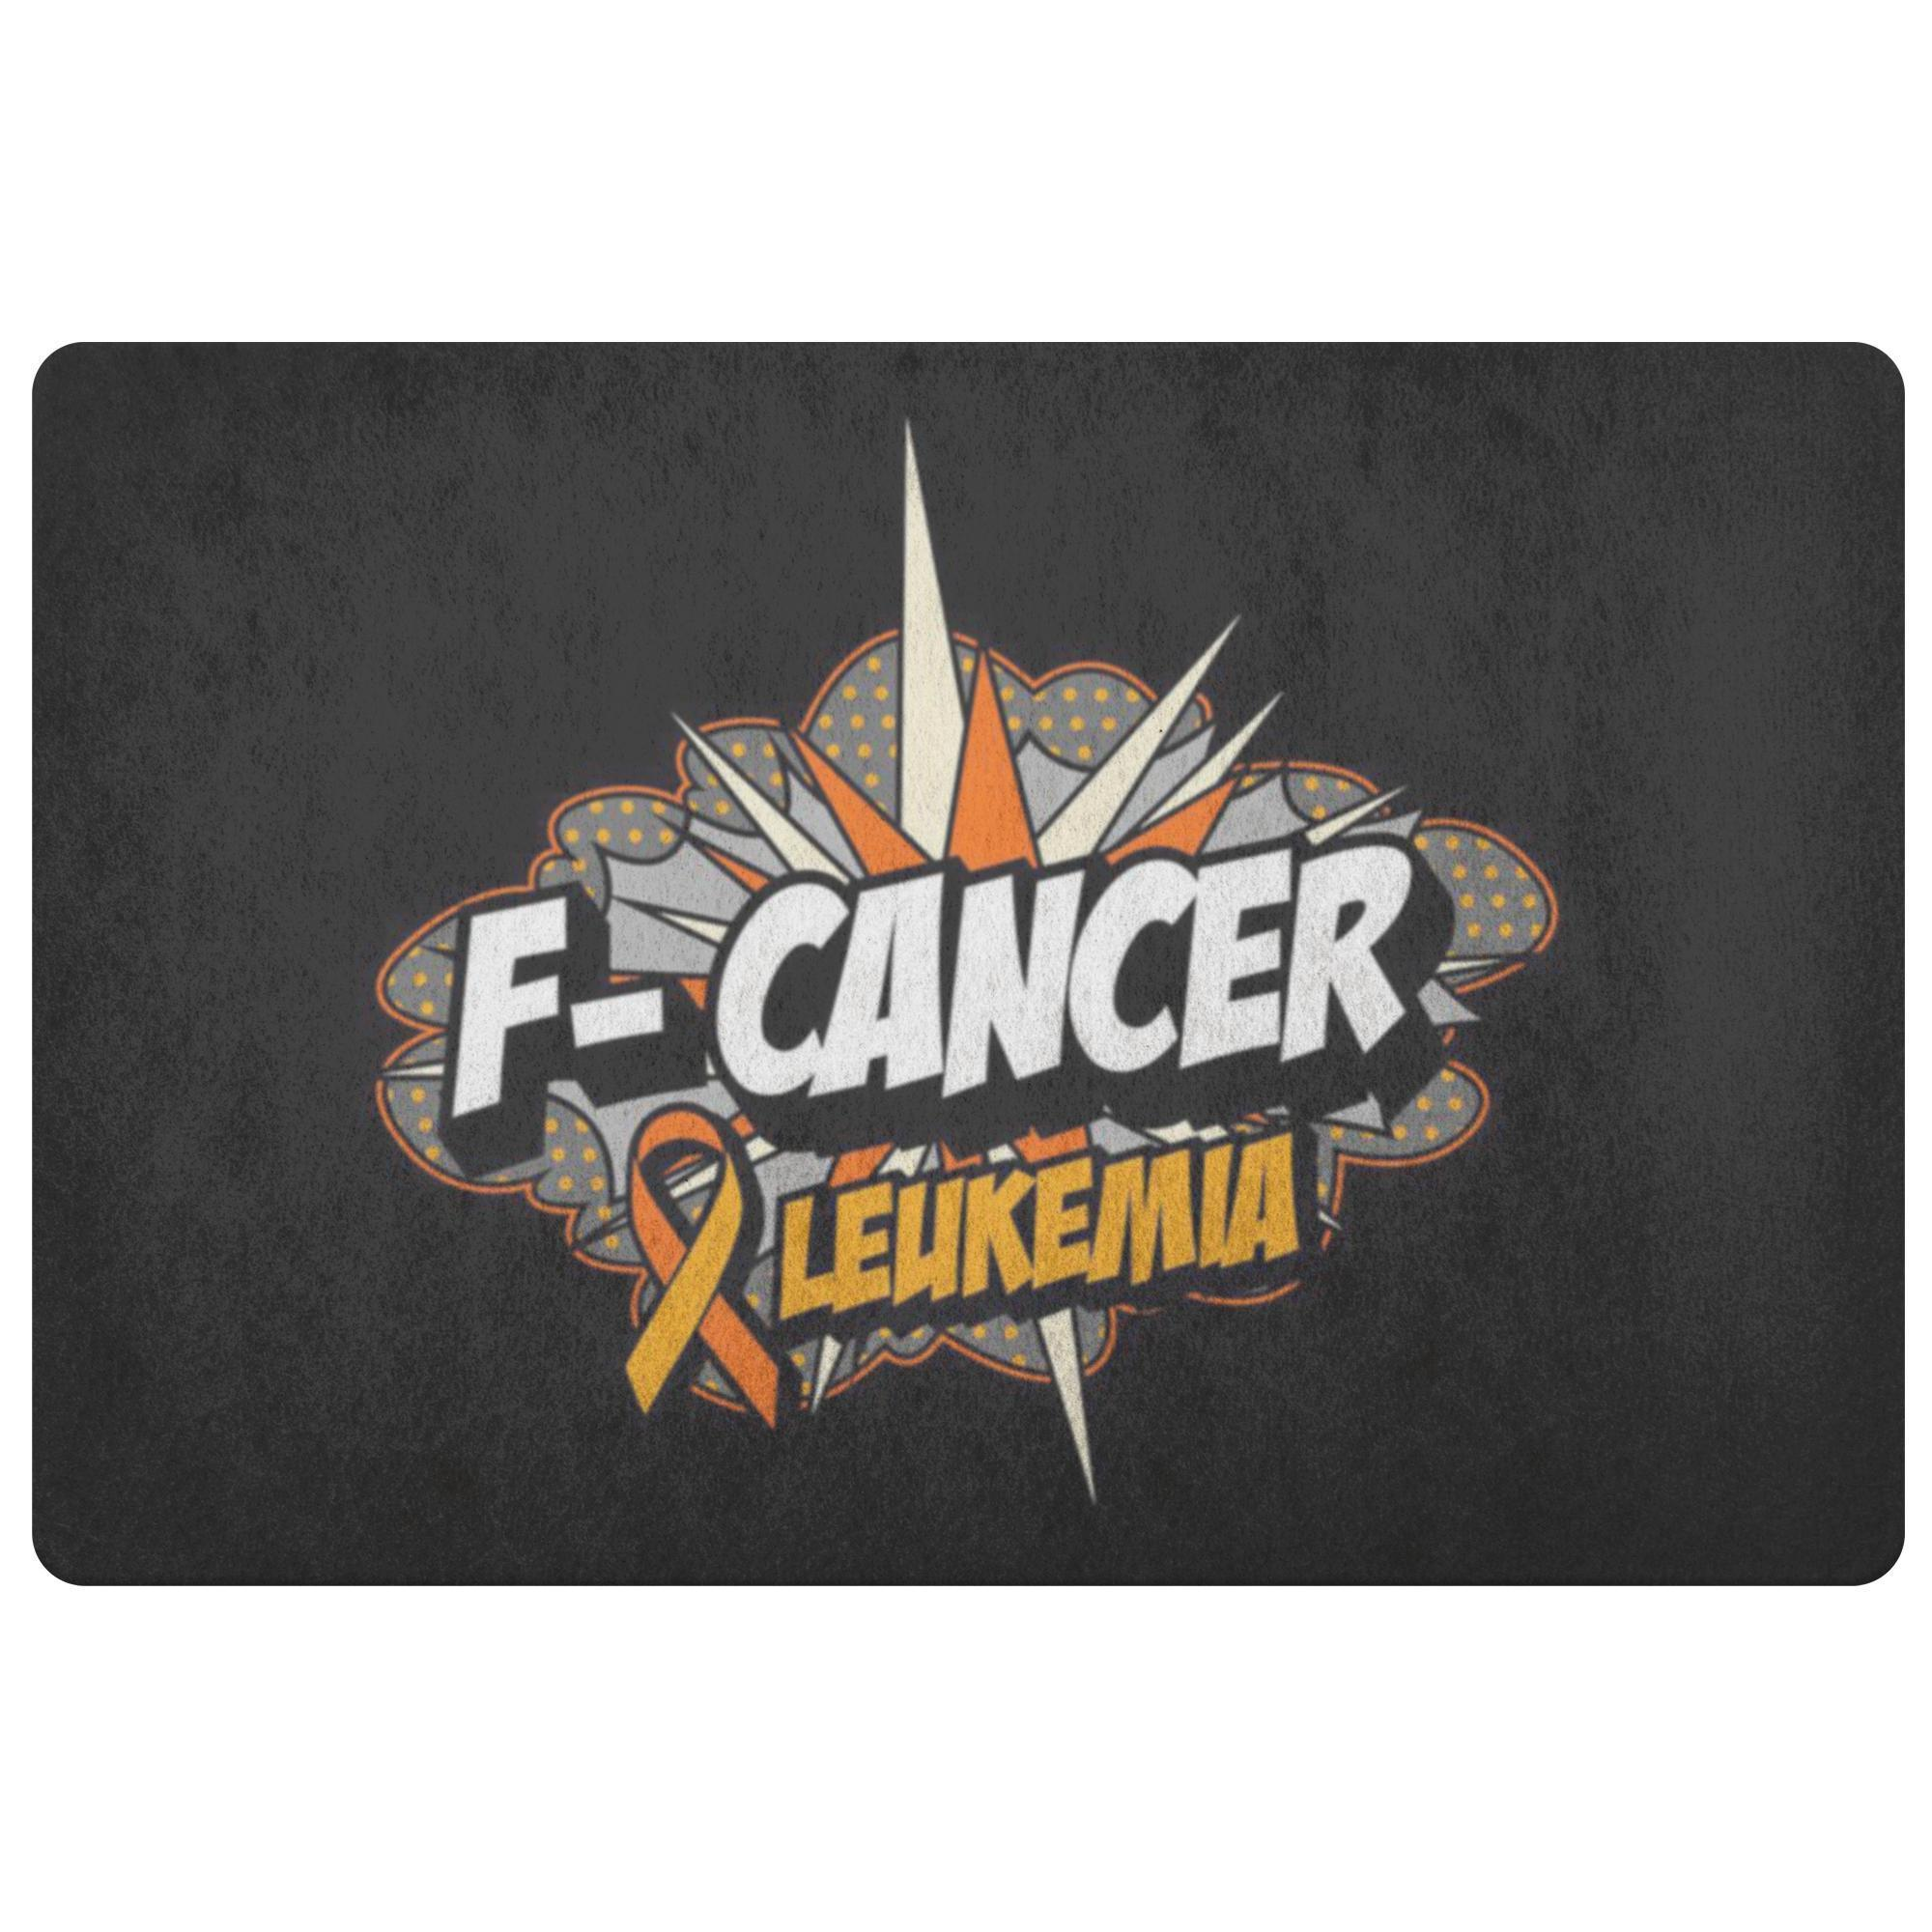 F-Cancer Leukemia Cancer Awareness 18X26 Thin Indoor Door Mat Outdoor Entry Rug-Doormat-Black-JoyHip.Com